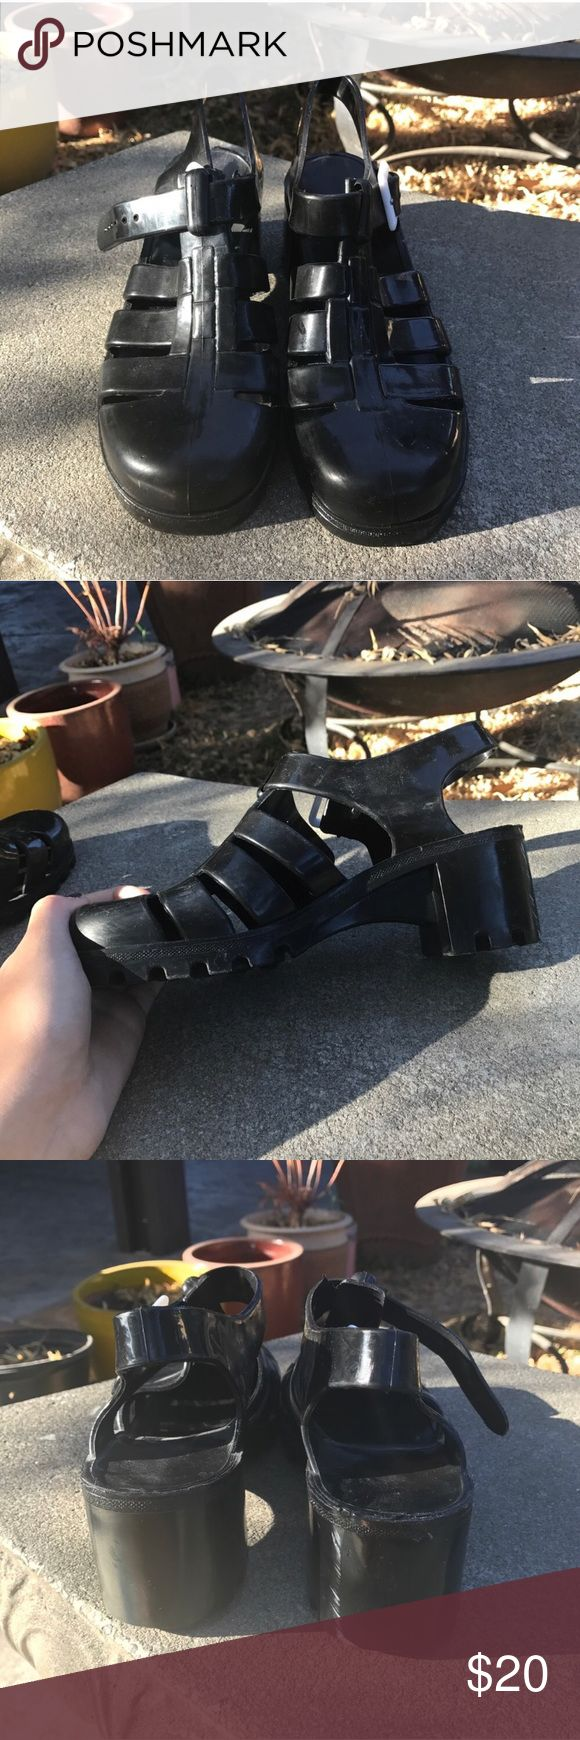 Black Juju Jelly Shoes Have a few scuff marks that I'm sure can be removed with some care. Really comfortable. Says size 6 but I am a size 8, my sister is a size 7 or 7 1/2 and they fit both of us great. JuJu Shoes Sandals